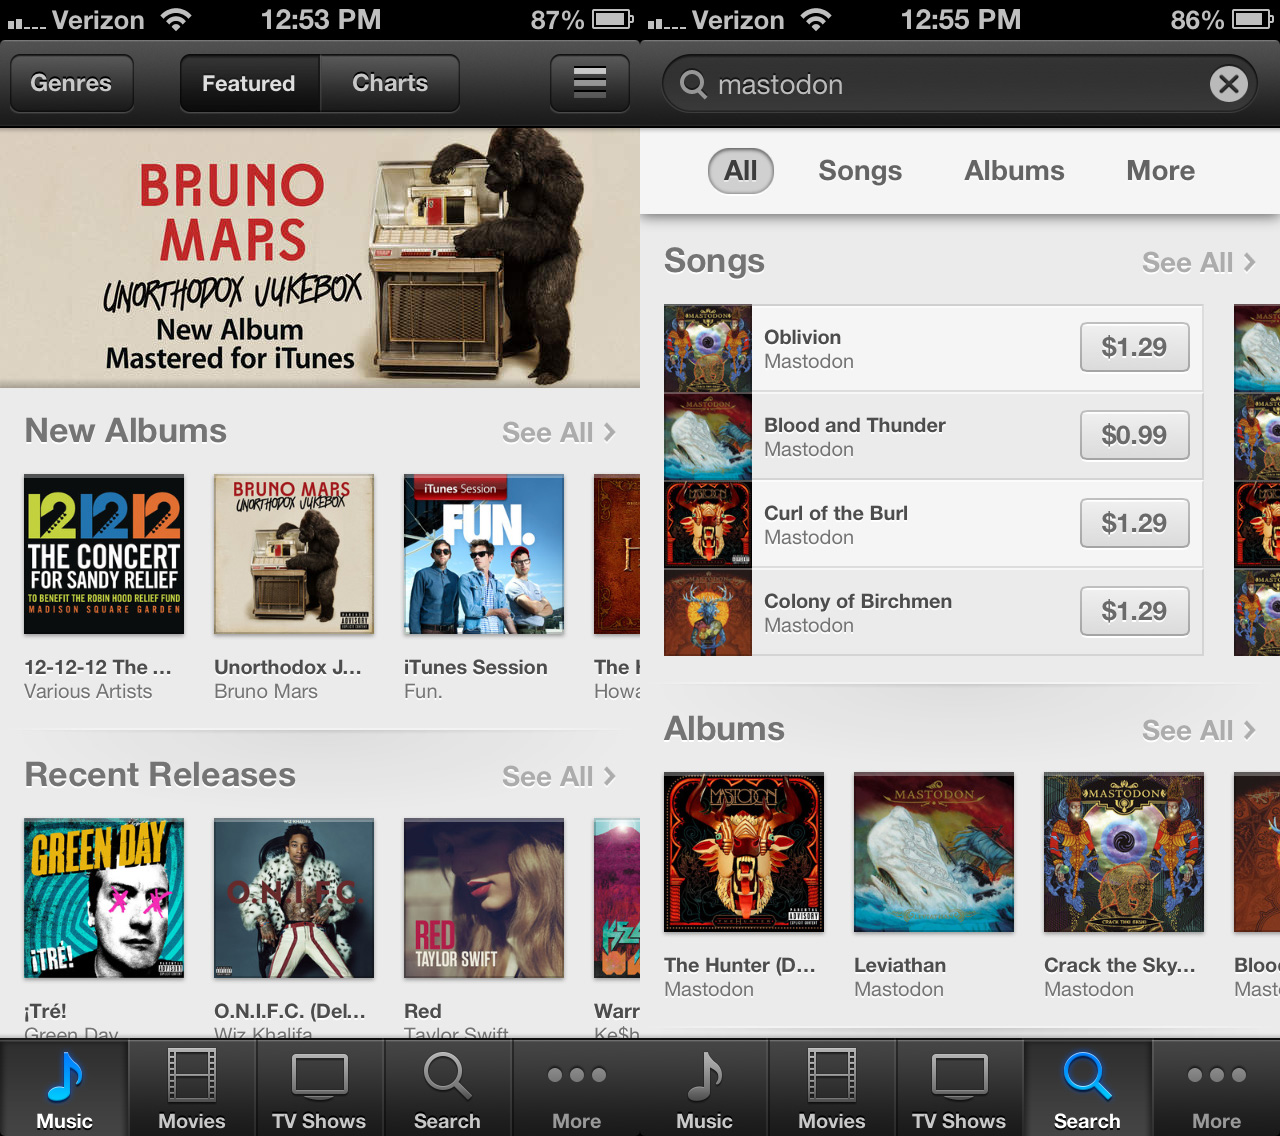 The iTunes app on iOS is used to browse the iTunes Store, including searching for particular artists.